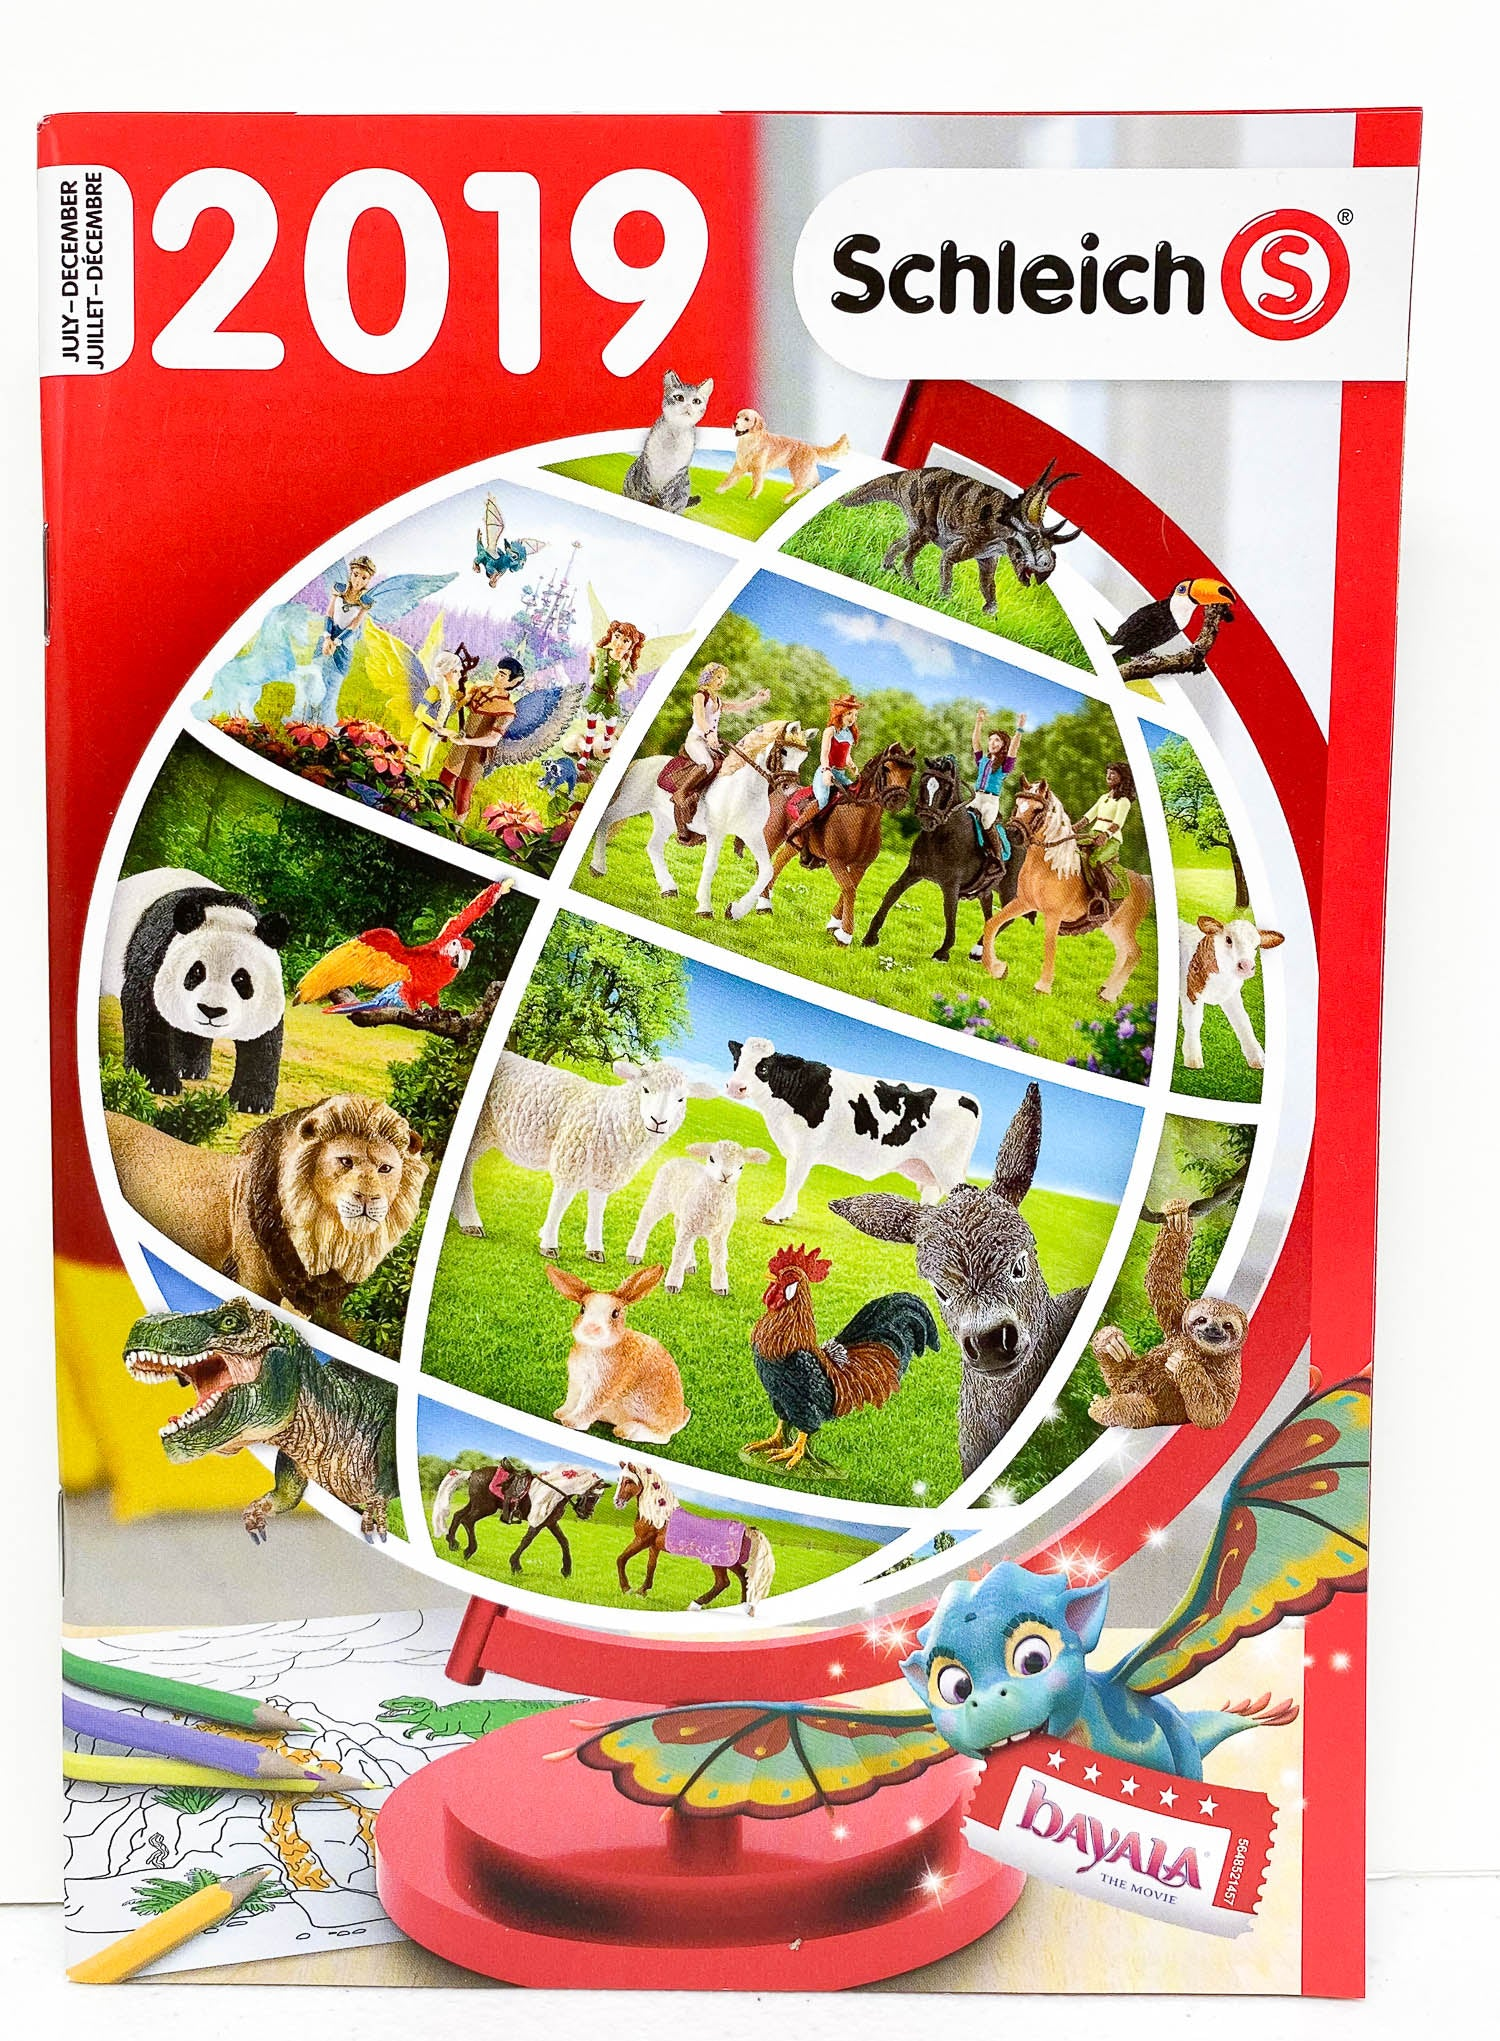 Schleich Brochure - 2019, July-Dec